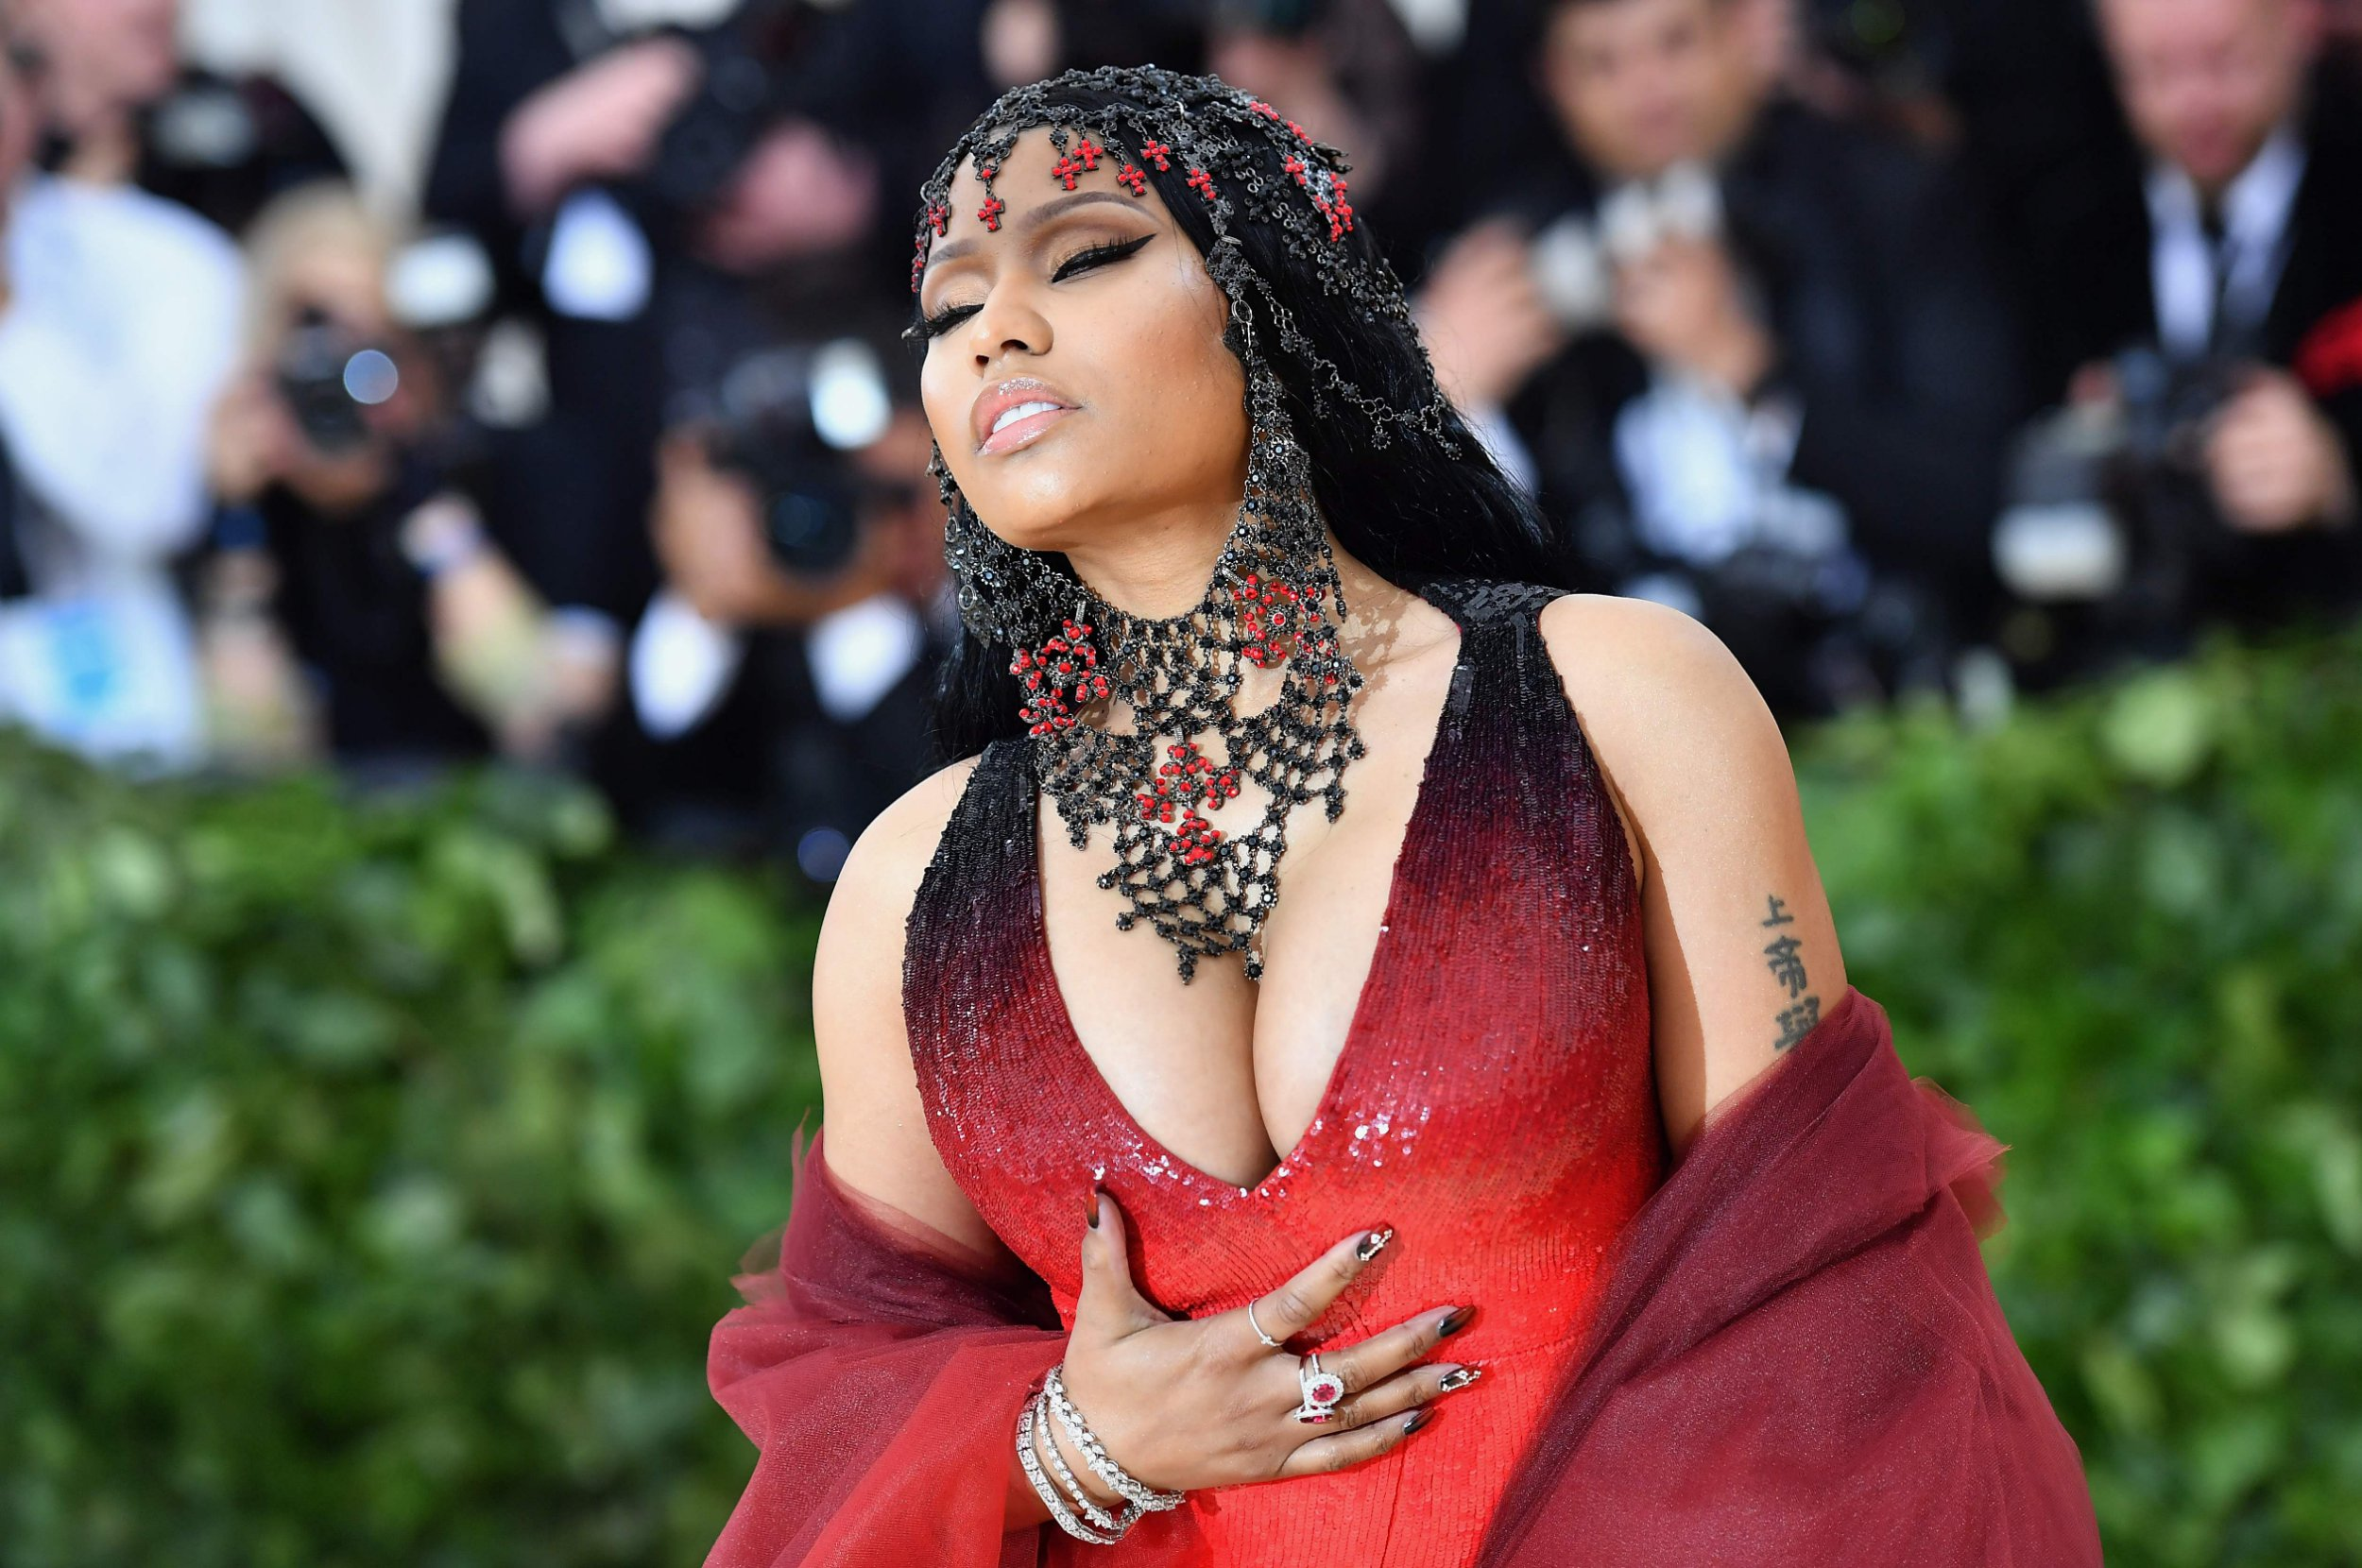 Nicki Minaj arrives for the 2018 Met Gala on May 7, 2018, at the Metropolitan Museum of Art in New York. The Gala raises money for the Metropolitan Museum of Arts Costume Institute. The Gala's 2018 theme is Heavenly Bodies: Fashion and the Catholic Imagination. / AFP PHOTO / ANGELA WEISSANGELA WEISS/AFP/Getty Images